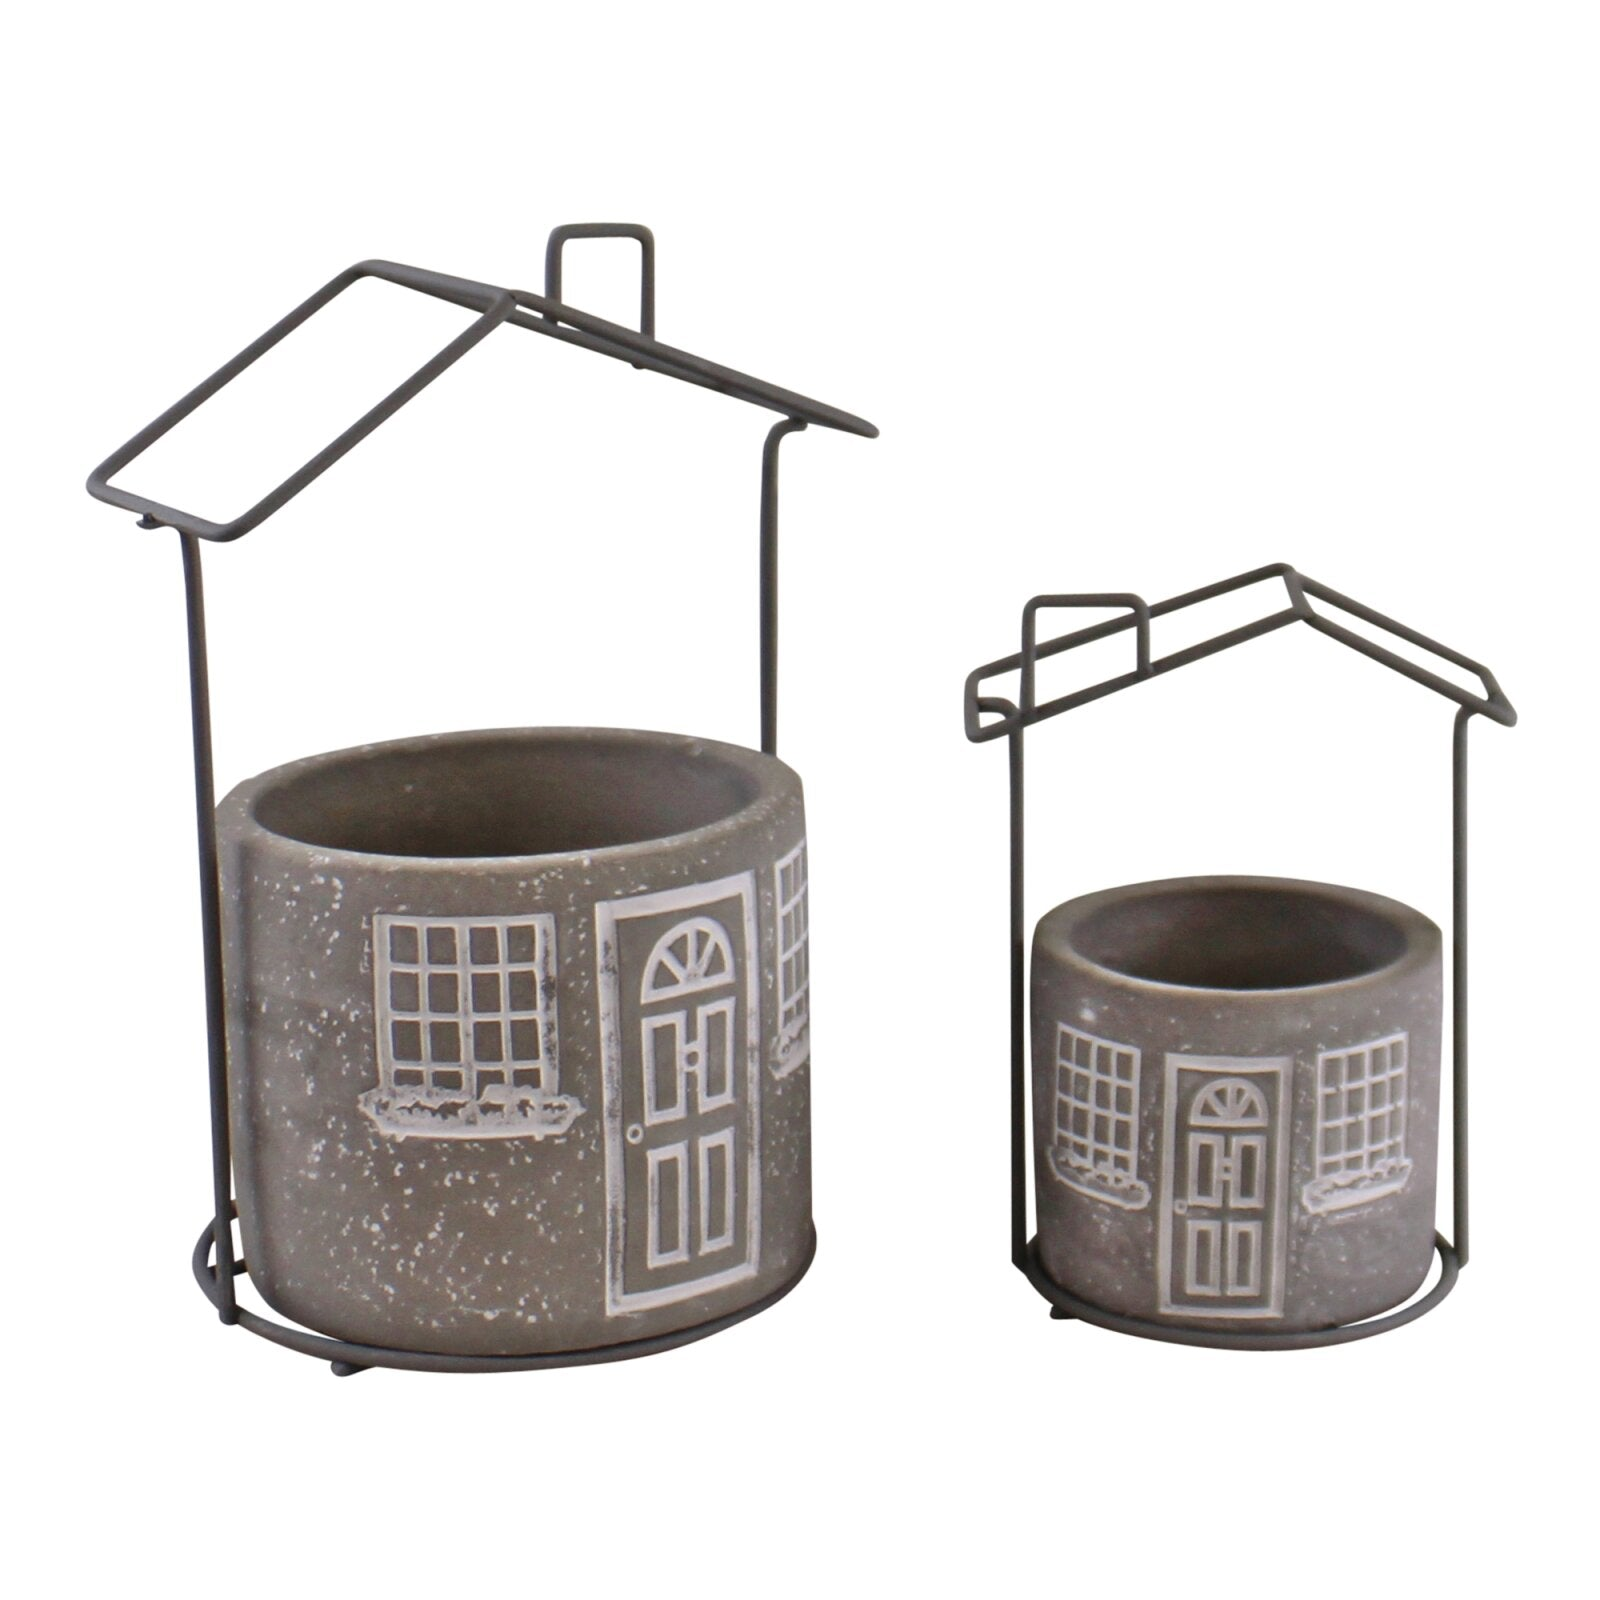 Set of 2 Cement House Planters, Round, Lawn & Garden by Low Cost Gifts